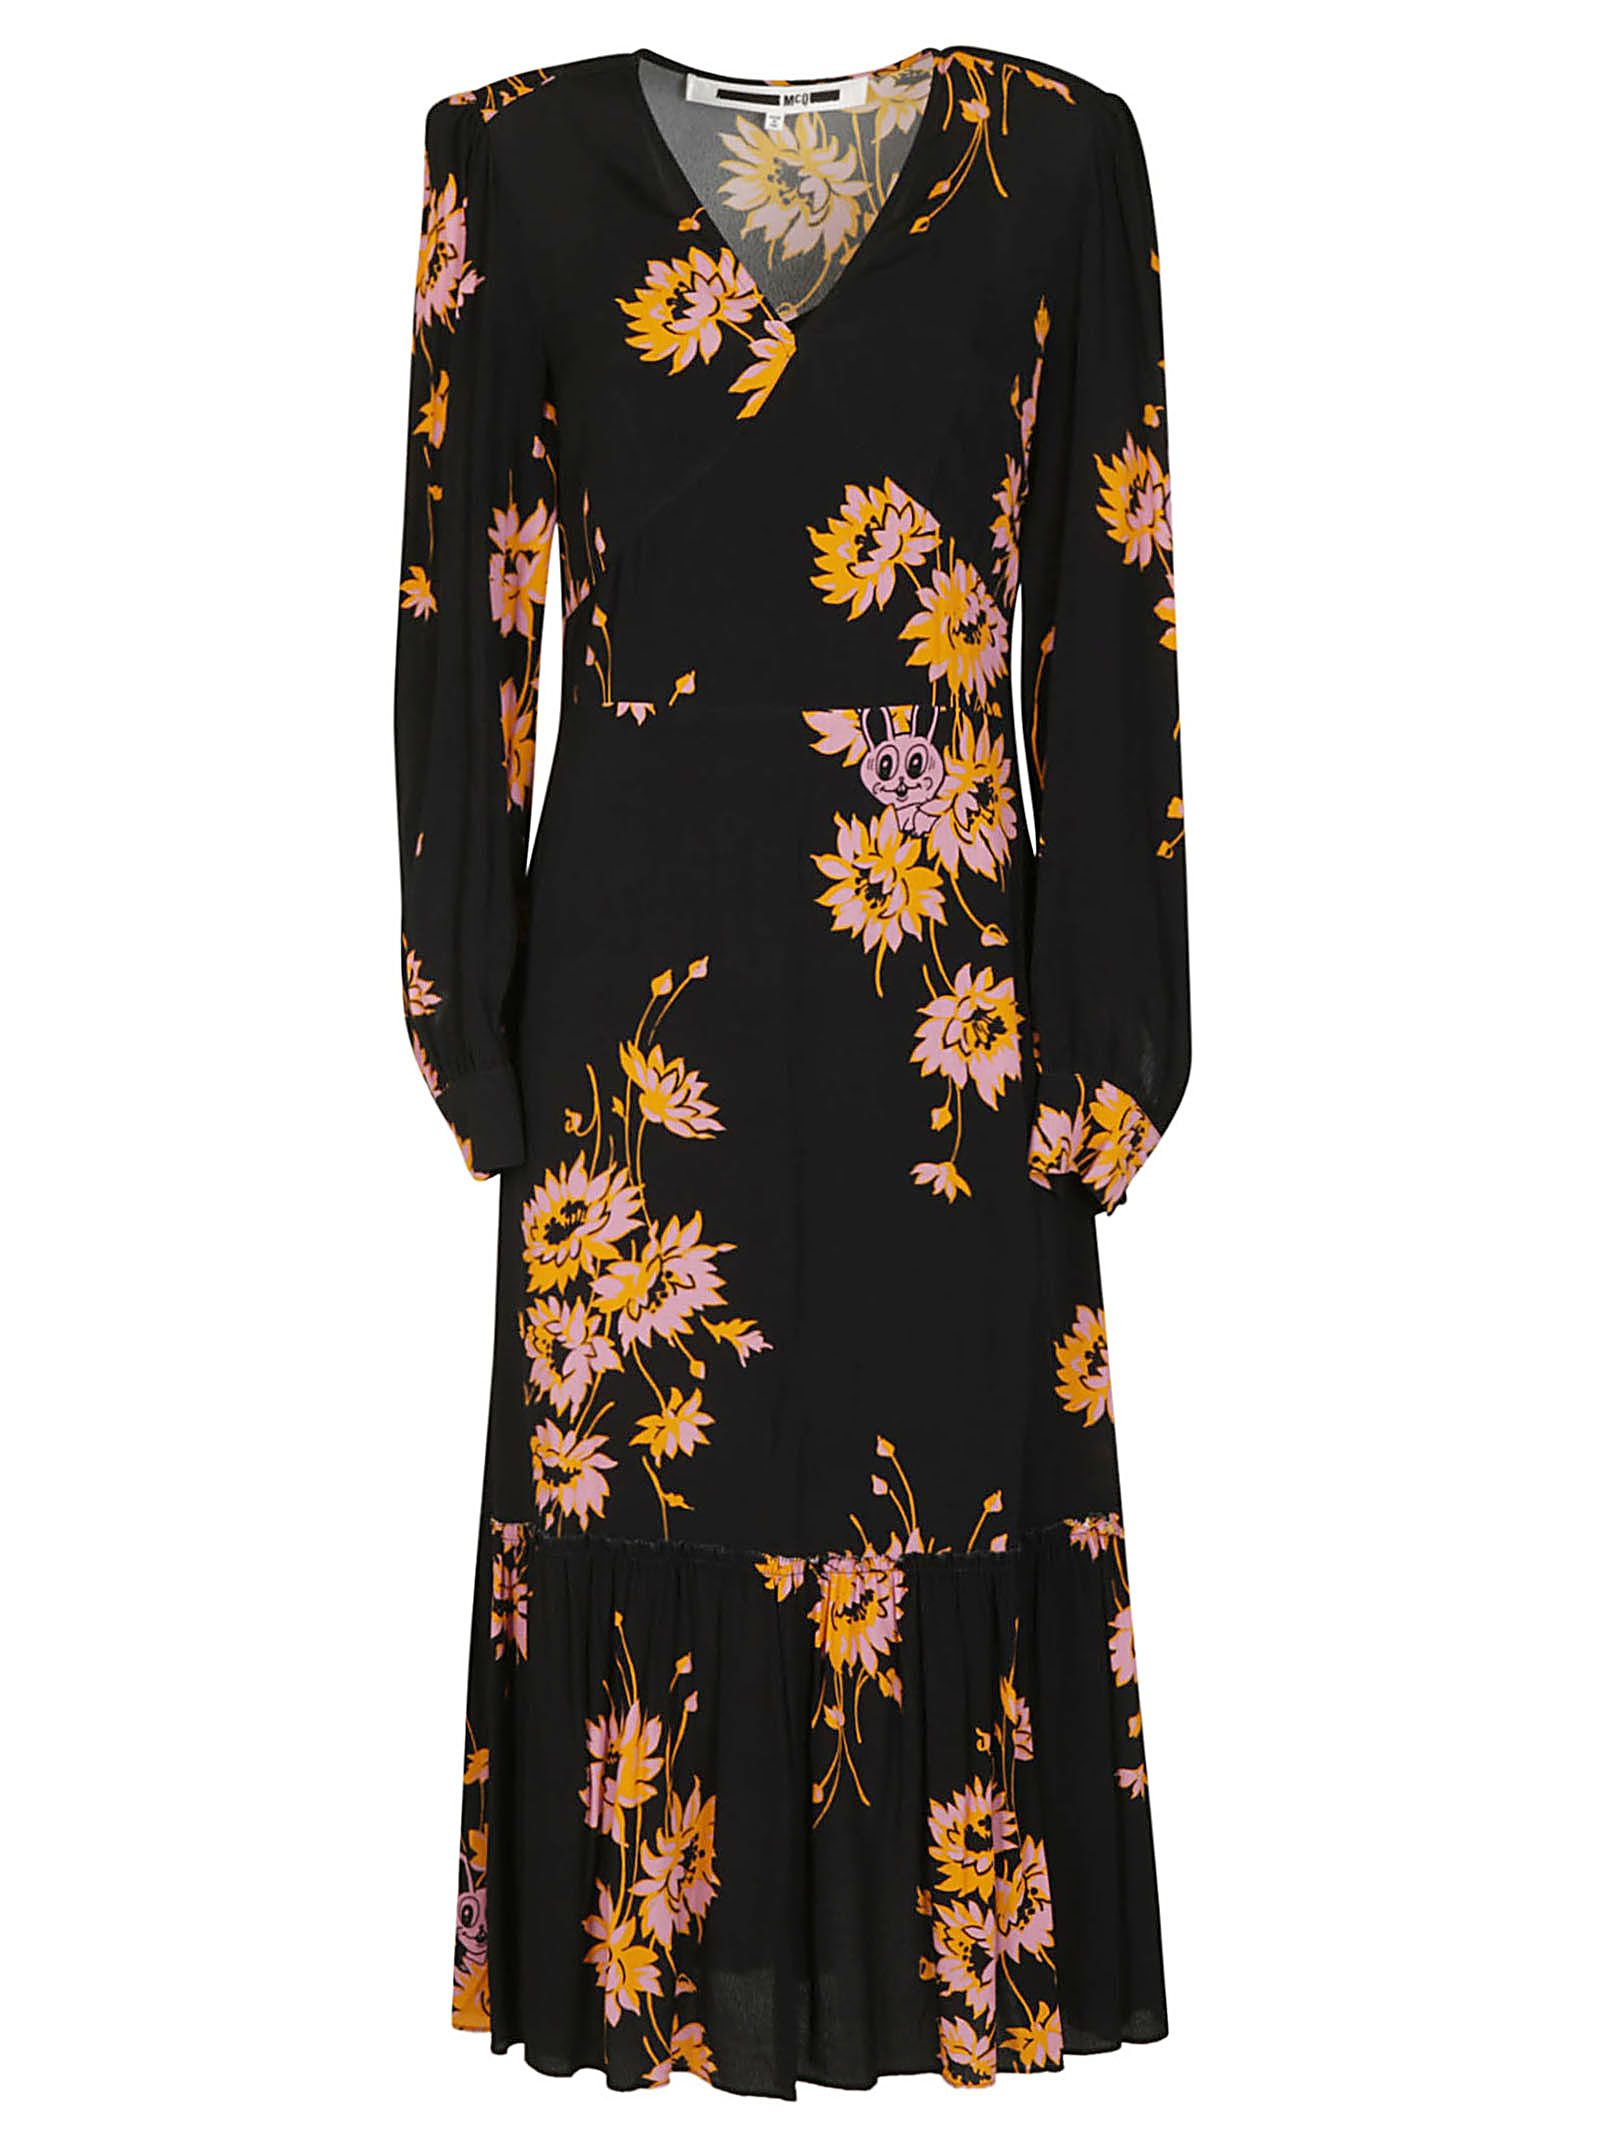 Mcq Alexander Mcqueen Floral Flared Dress